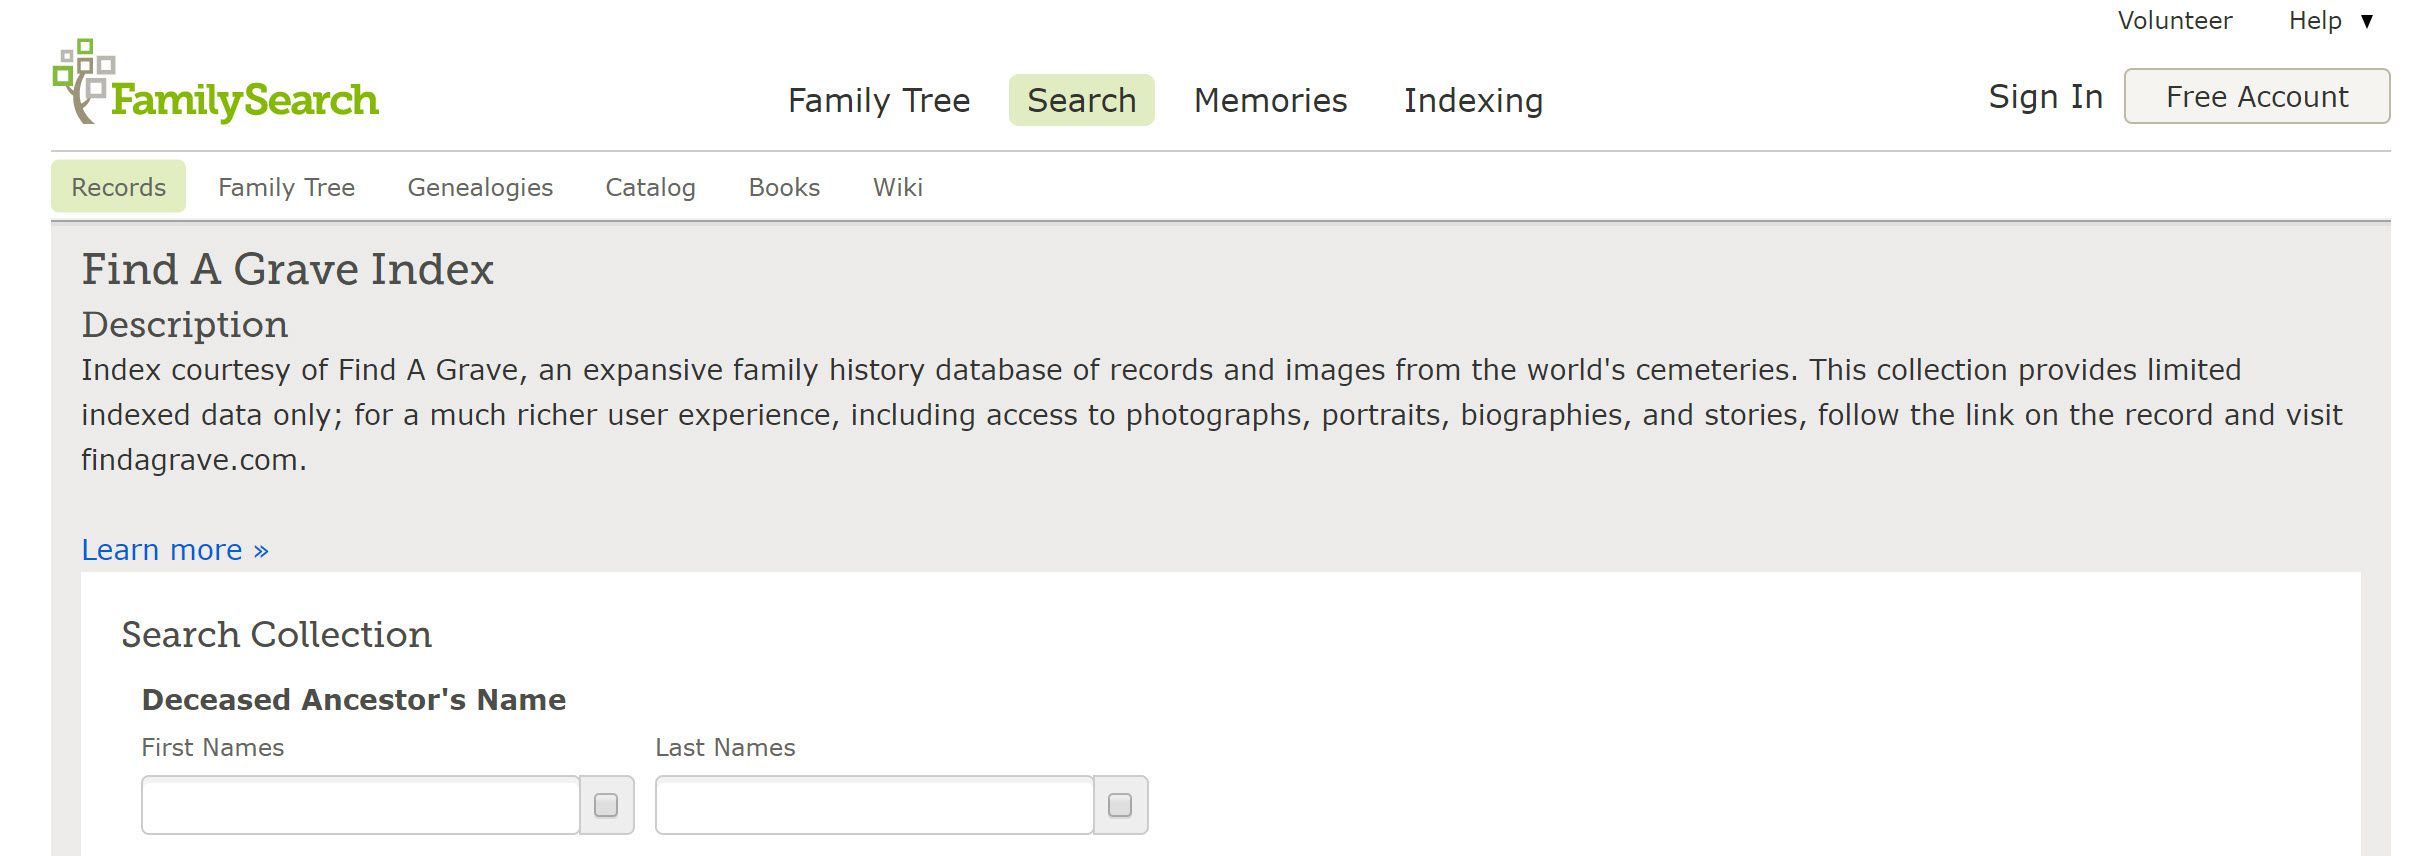 Screenshot from the FamilySearch Find A Grave Index.